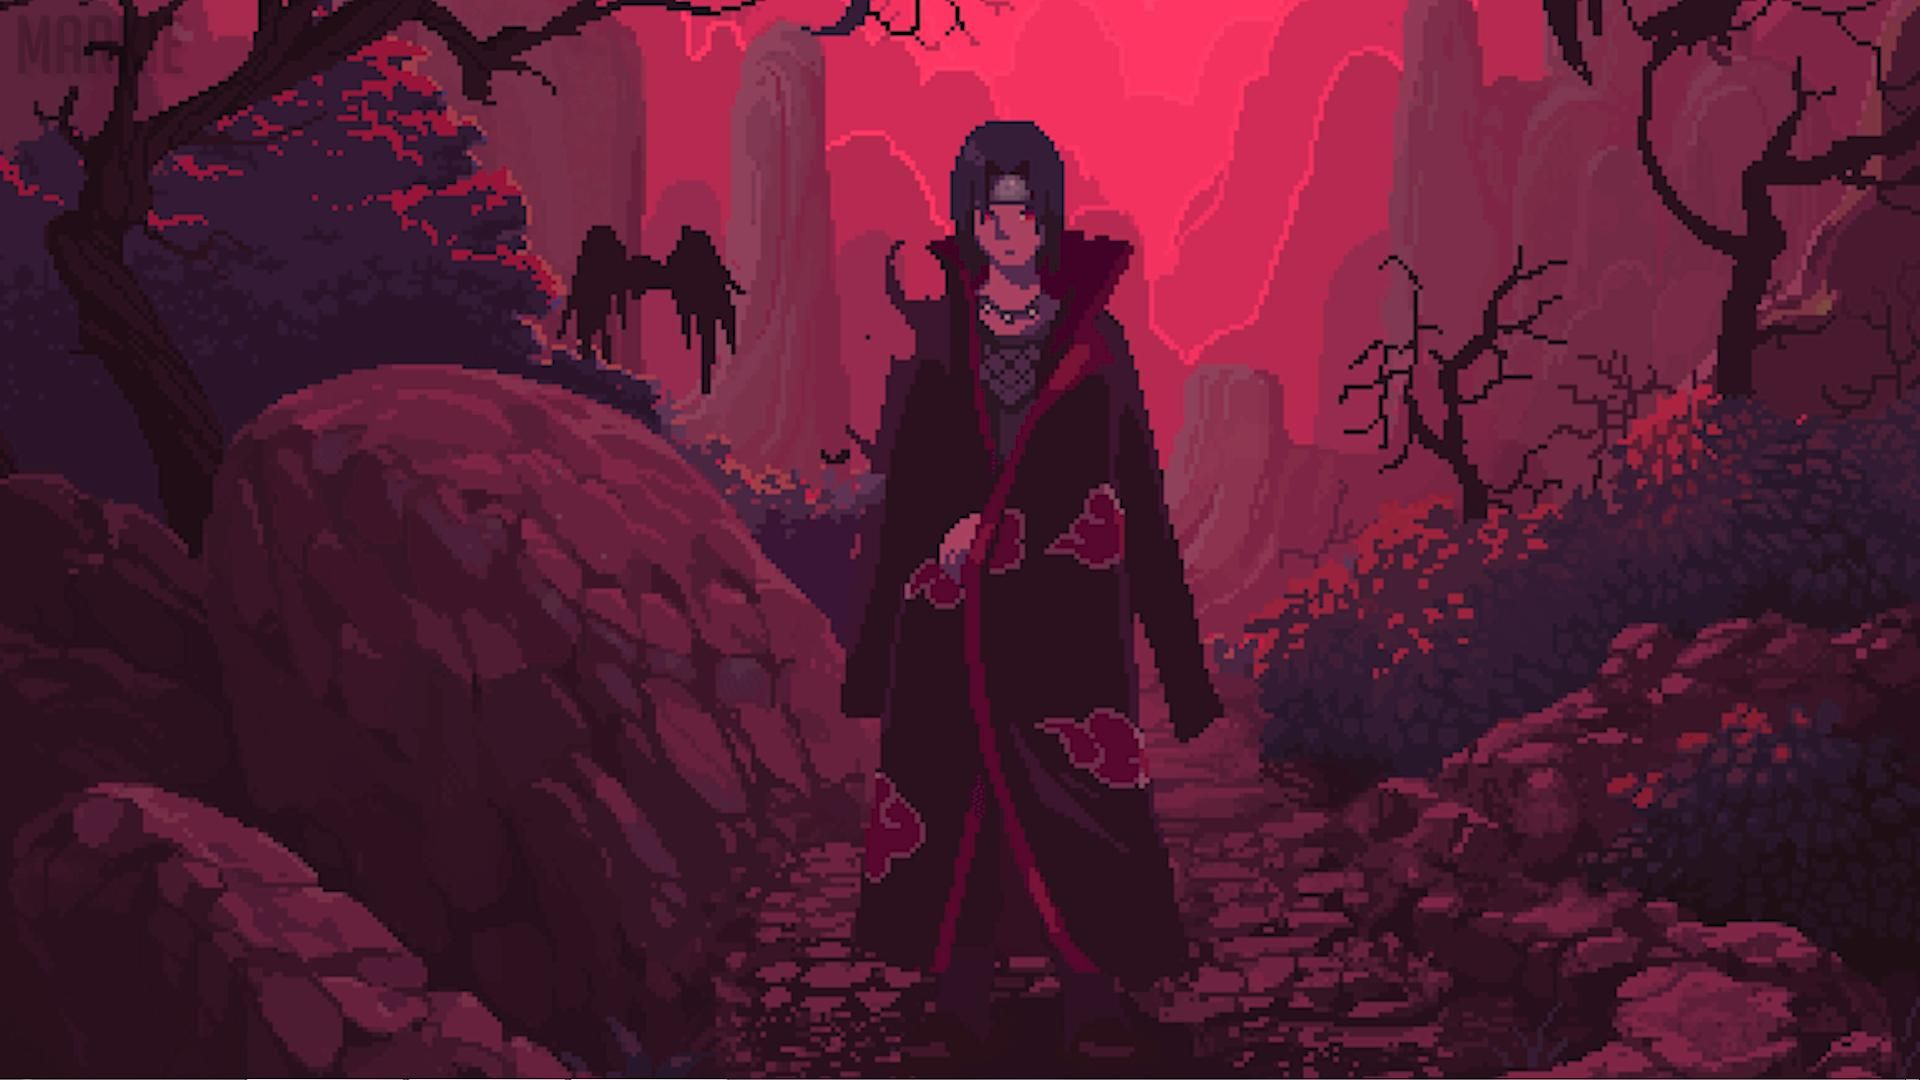 Itachi Uchiha Many Nights (Without Music) wallpaper for